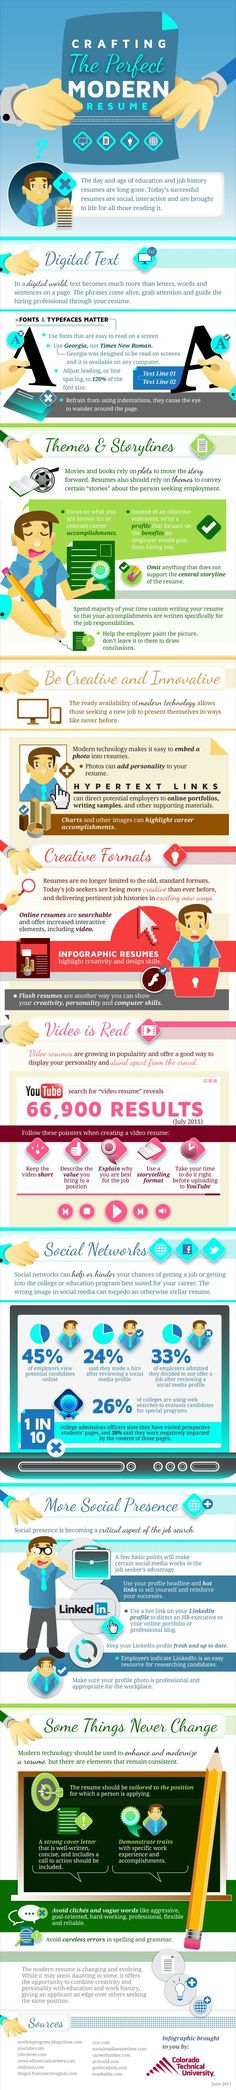 HOW TO: Spruce Up a Boring Resume [INFOGRAPHIC] #onlinemarketing